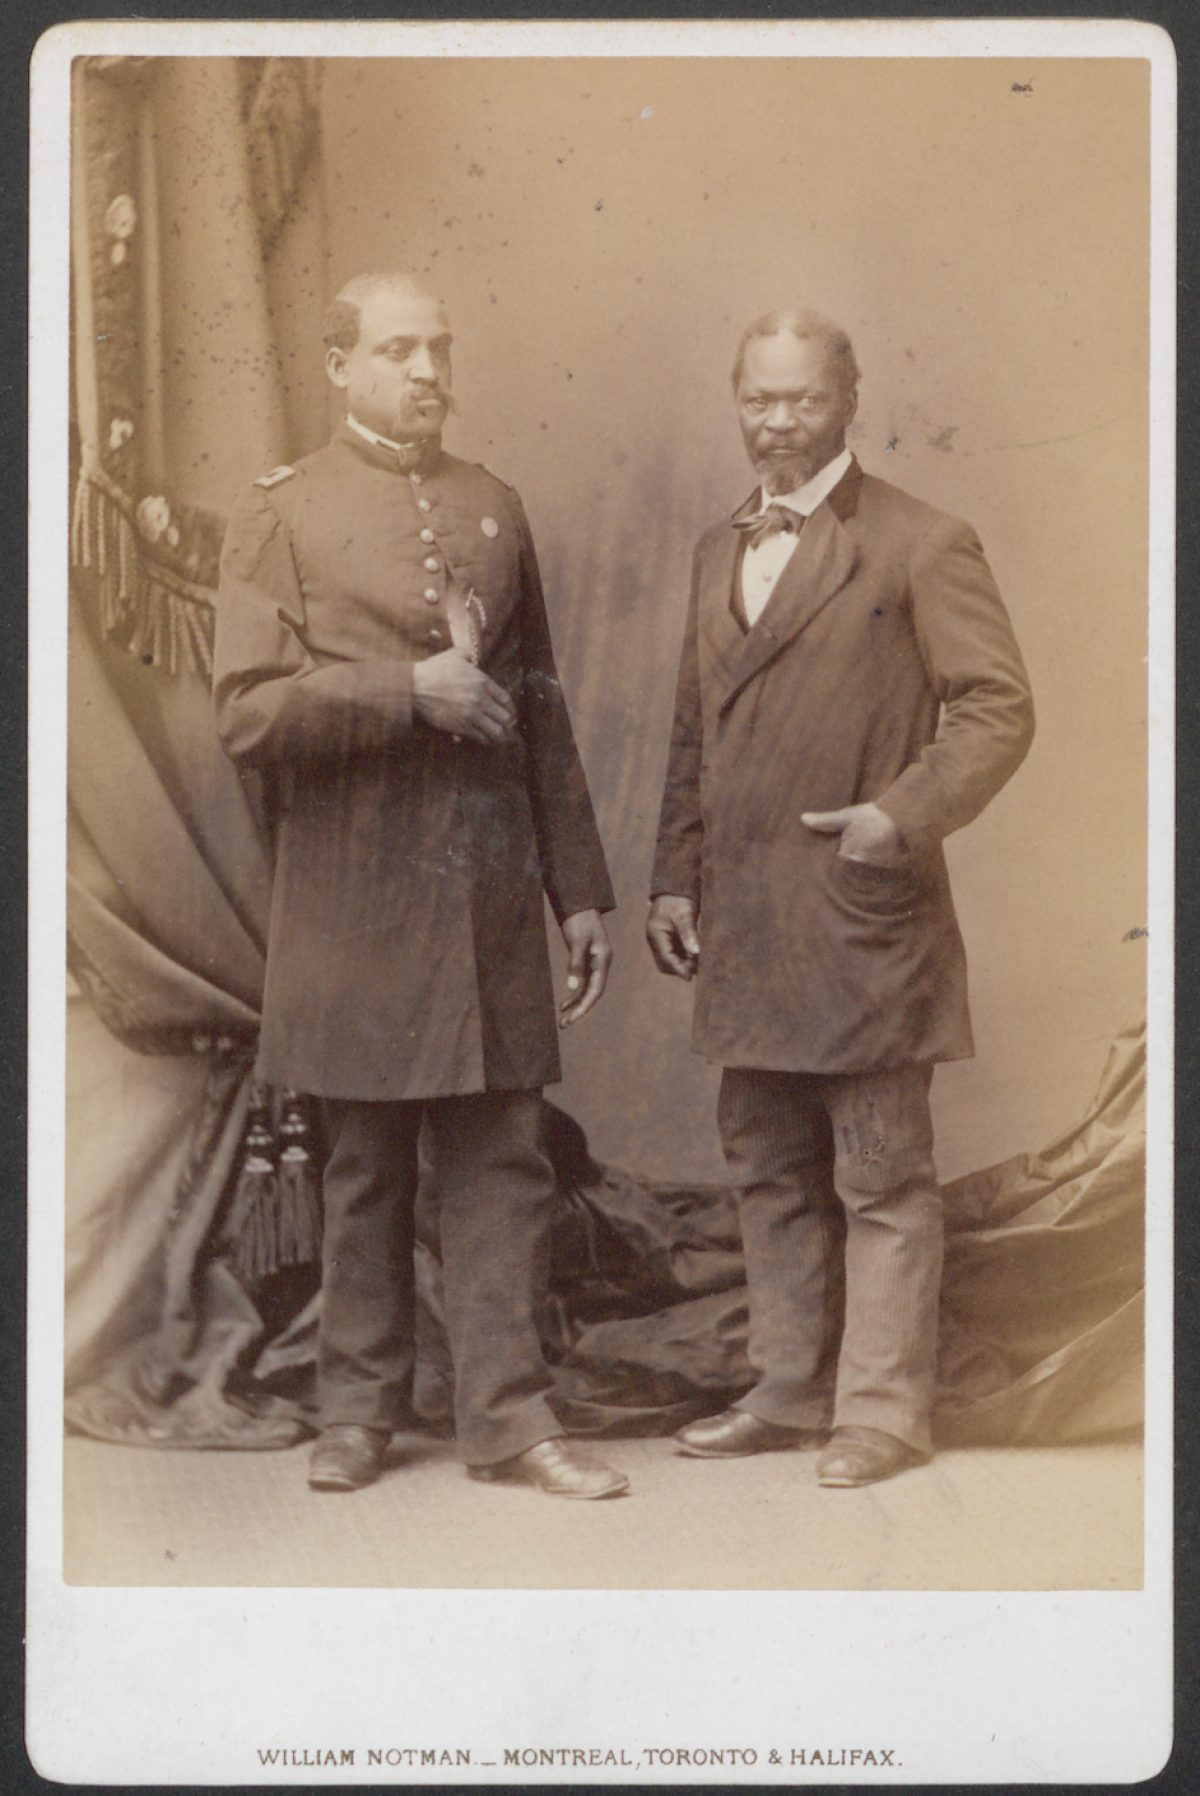 James C. Johnson and Unidentified Soldier